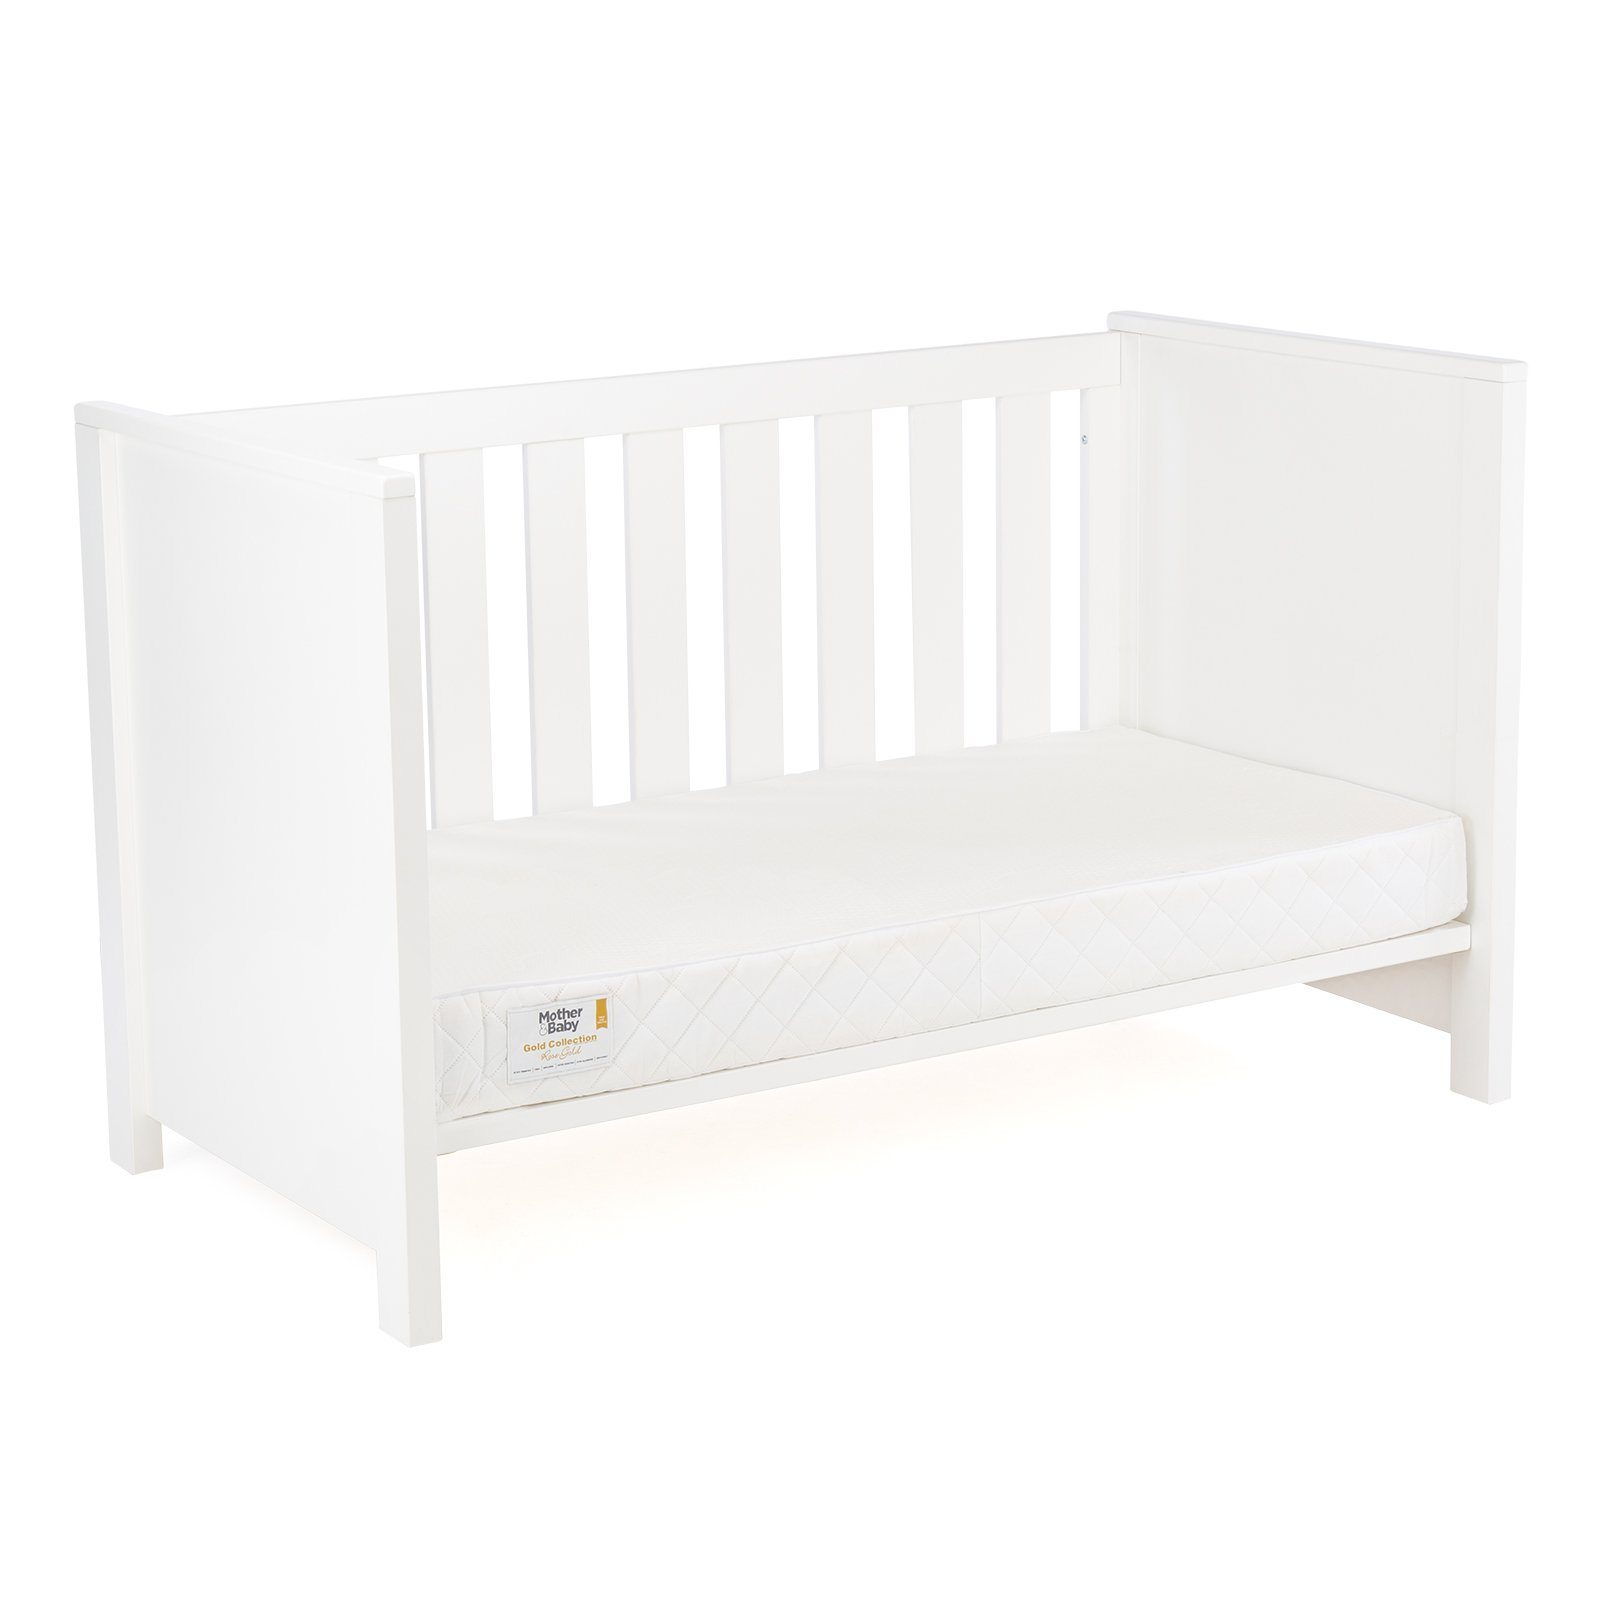 Aylesbury Cot Bed 140x70cm - White Furniture CuddleCo